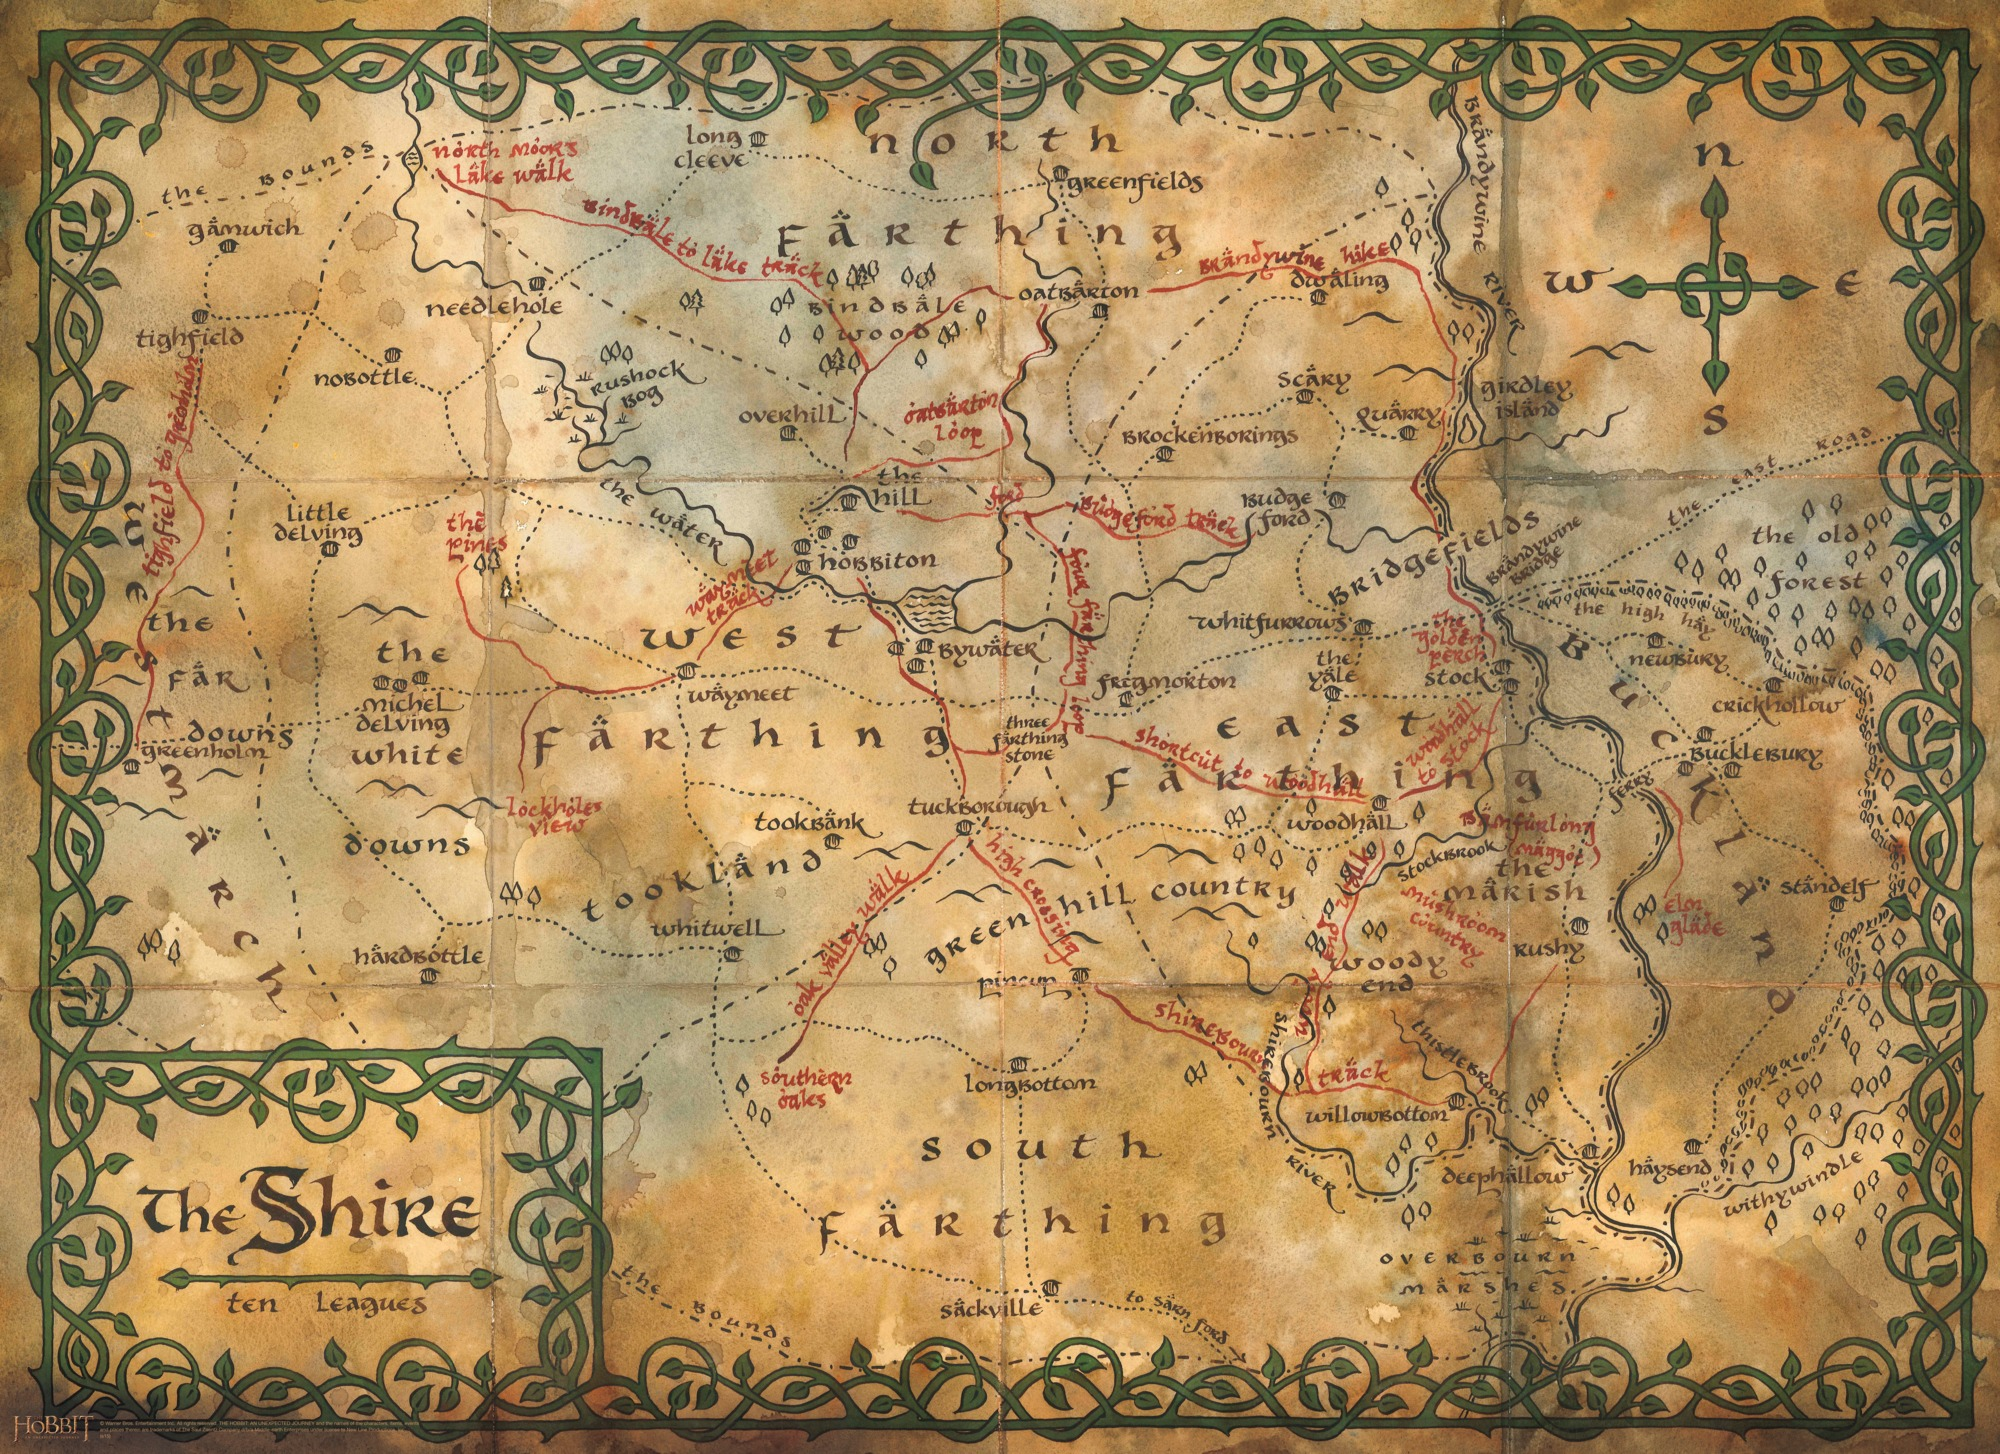 Hobbit Map Wallpaper Map of the shire middle earth 2000x1454